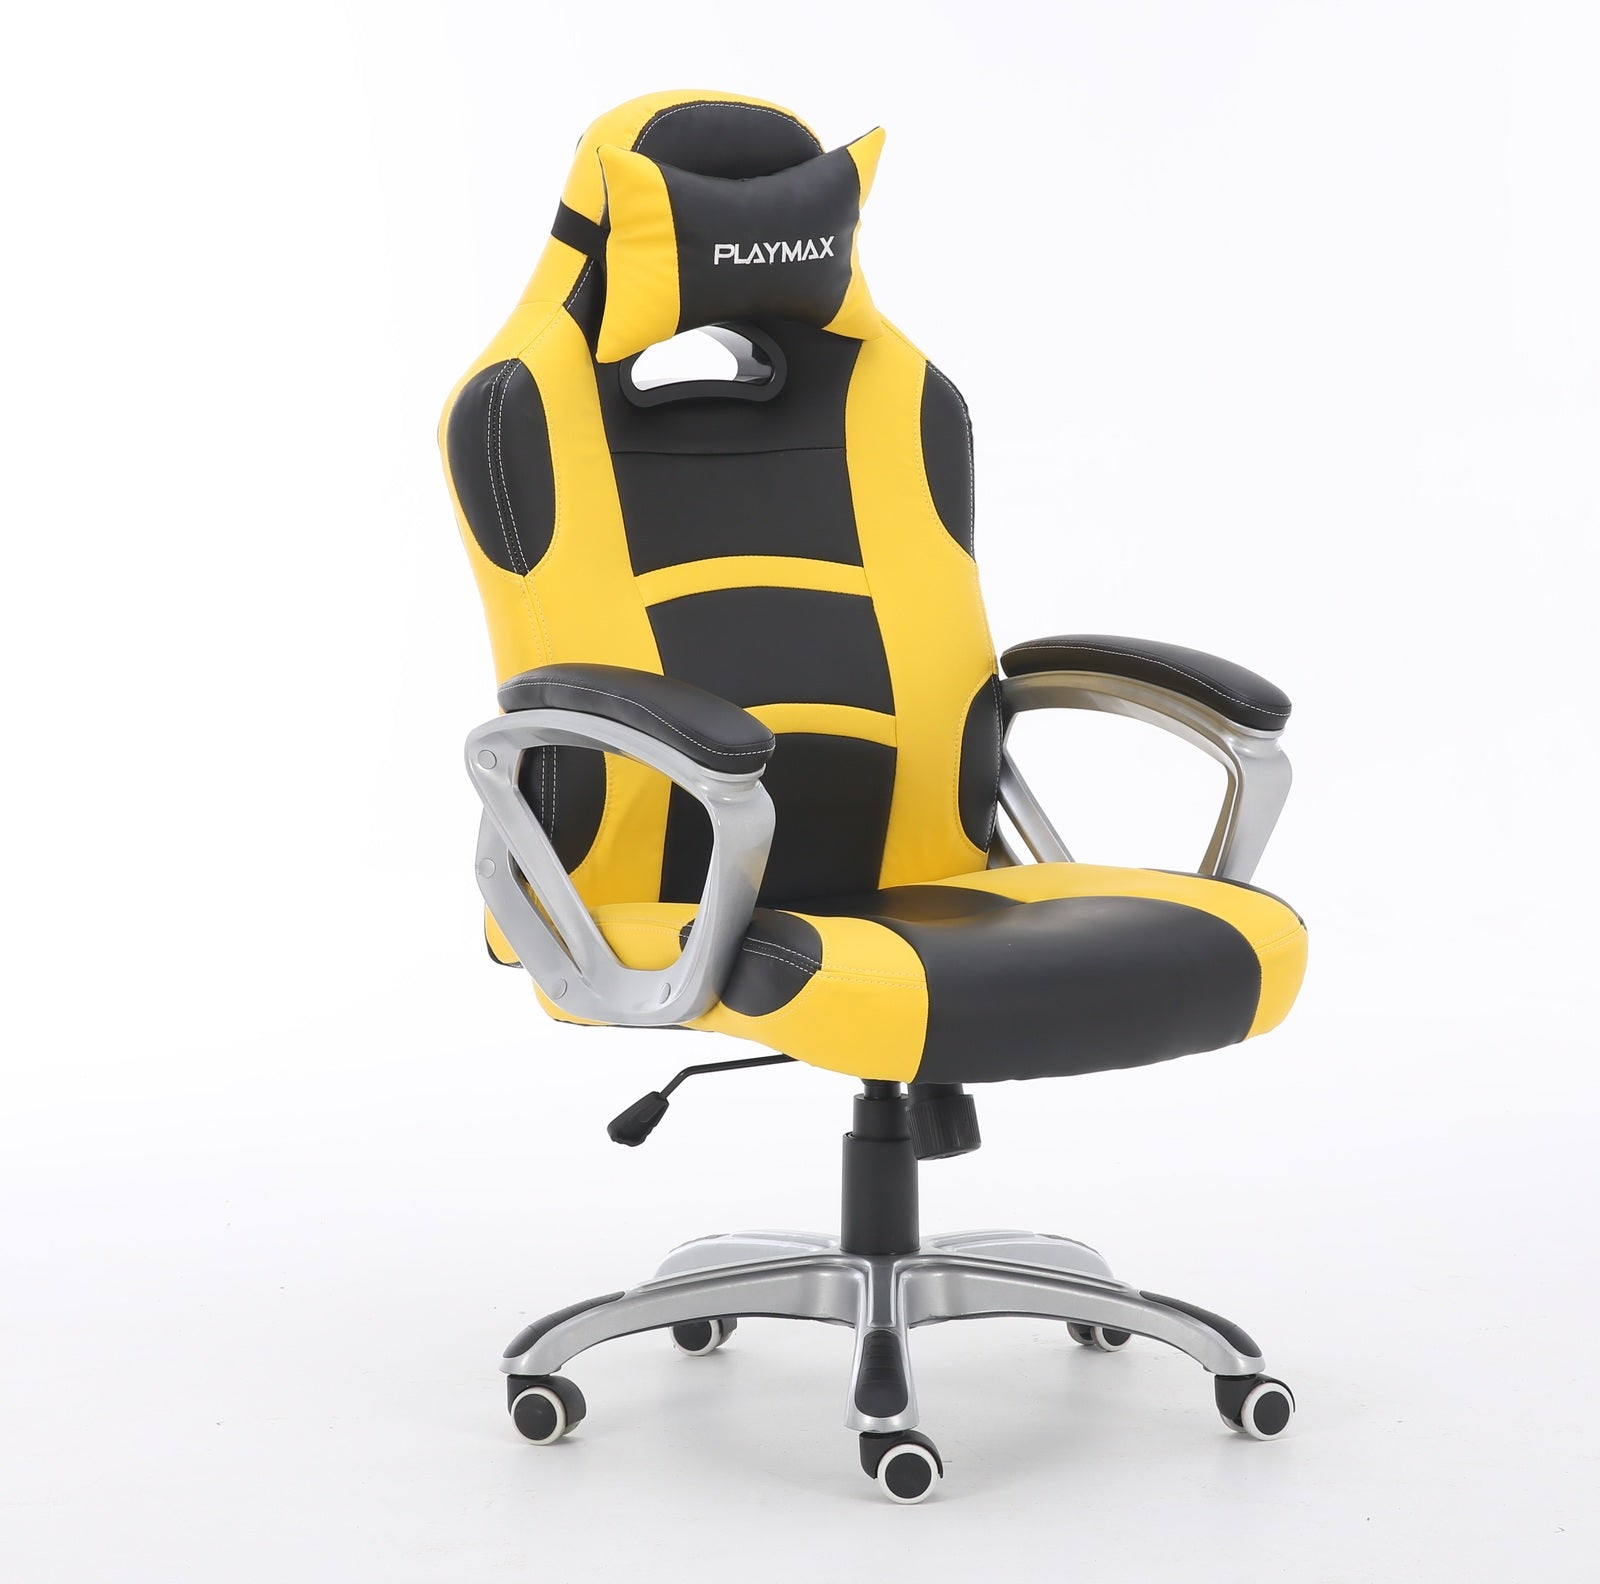 Playmax Gaming Chair Yellow and Black